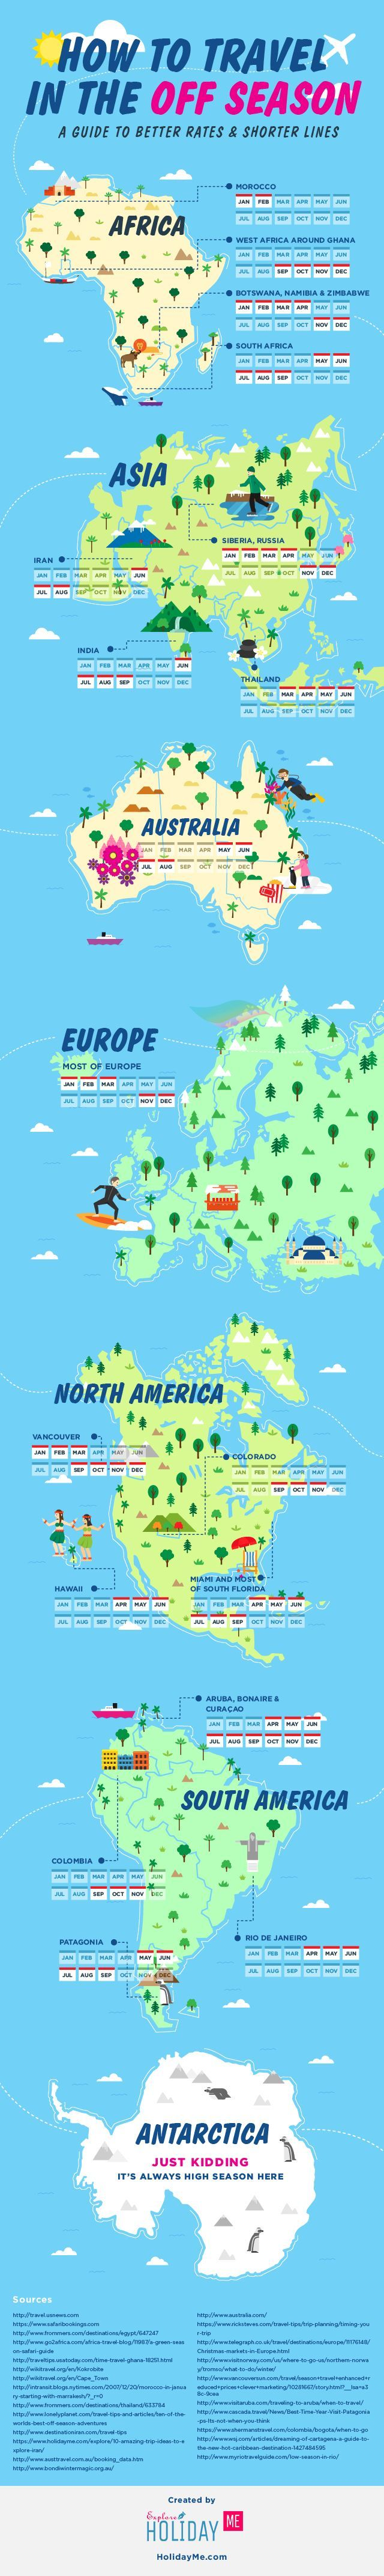 Affordable Vacation Spots A Global Guide To f season Travel Infographic